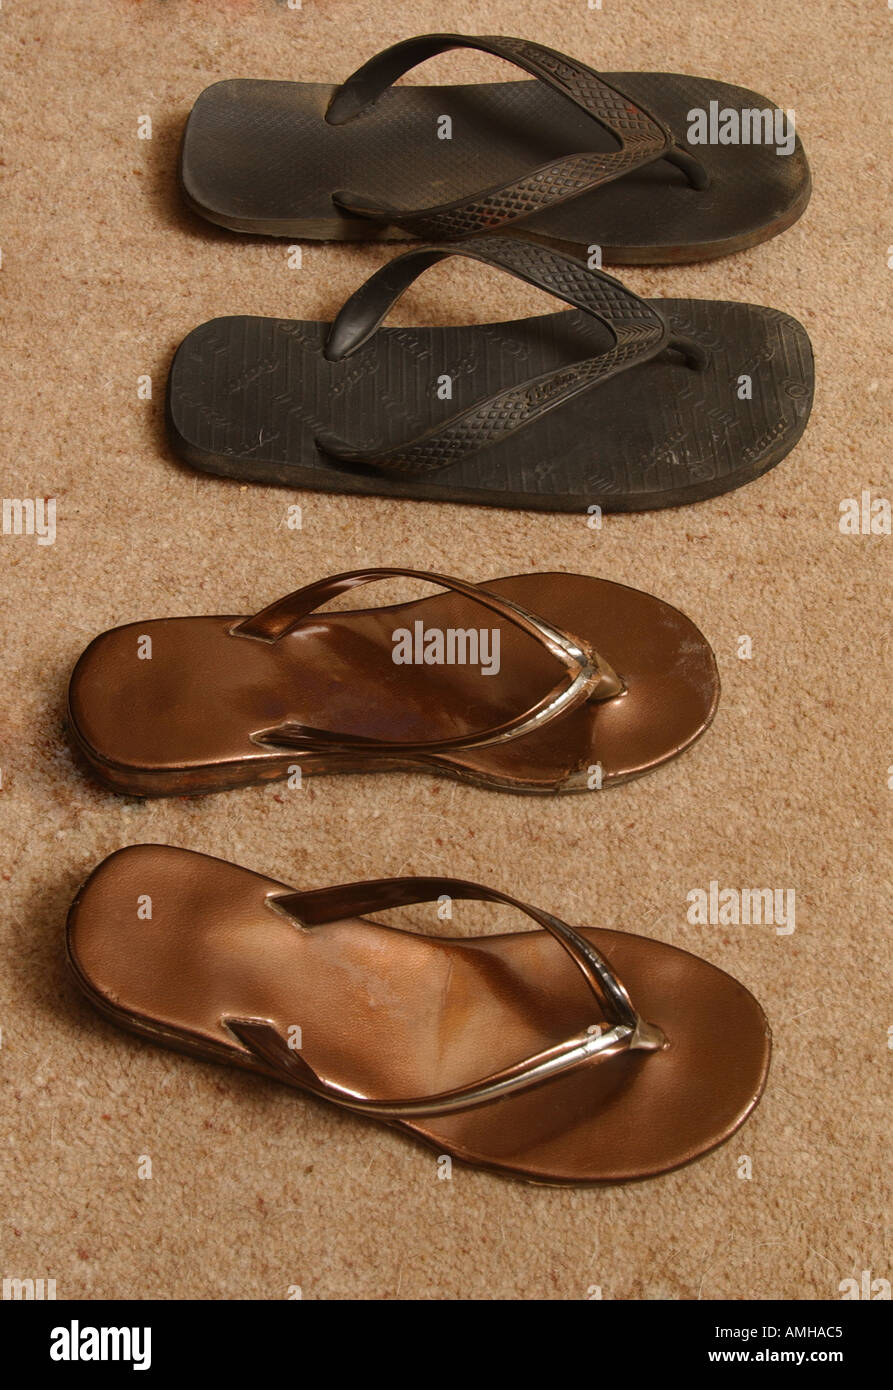 Tsunami Victims Stock Photos Images Alamy Sandal Sehat Beach Shoes Belonging To Of The In Sri Lanka December 2004